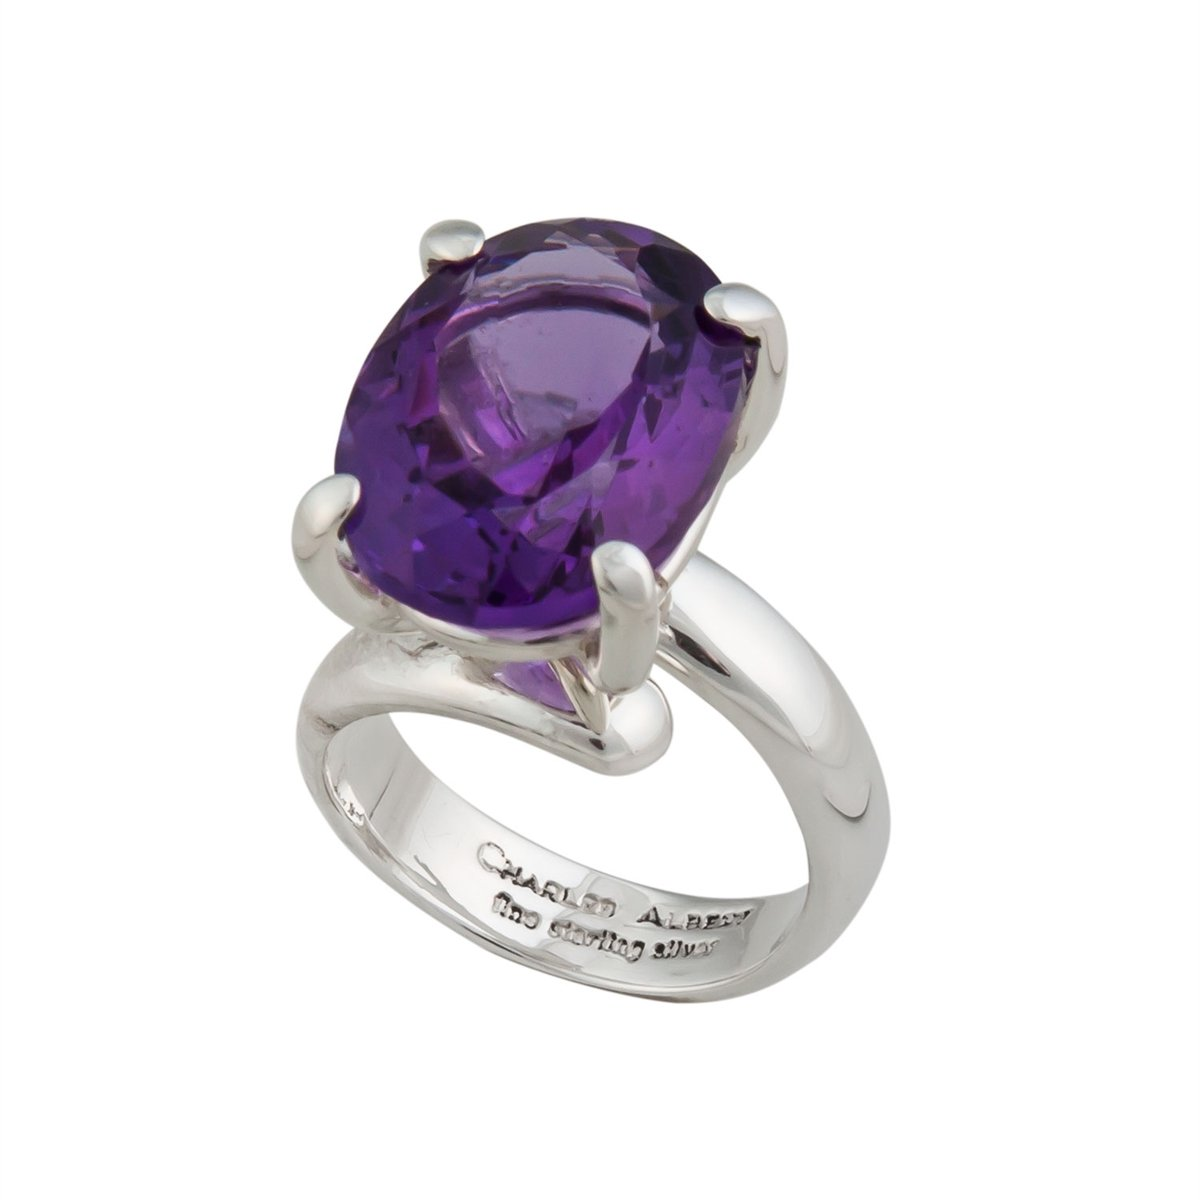 Sterling Silver Oval Amethyst Prong Set Adjustable Ring | Charles Albert Jewelry